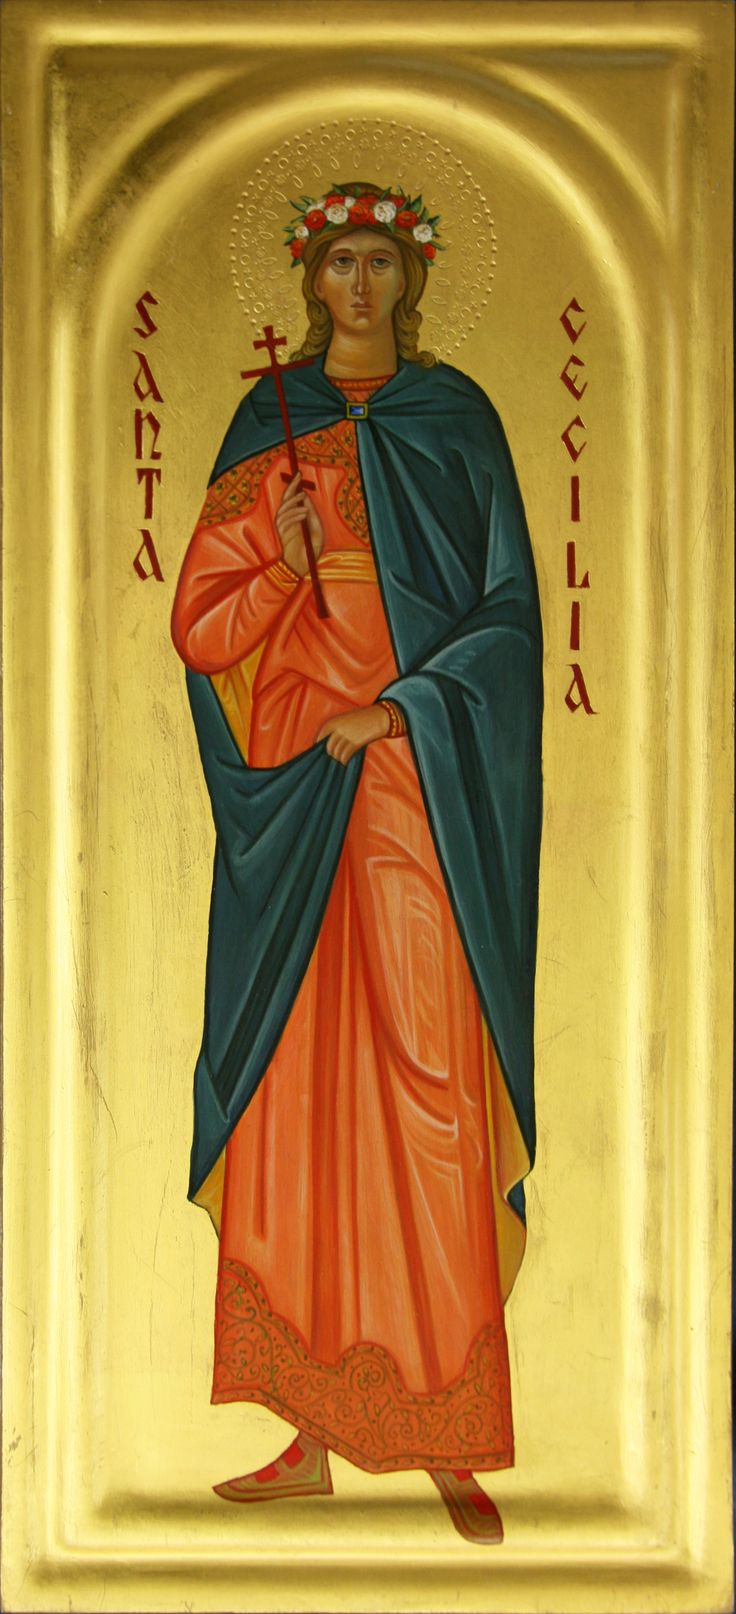 saint cecilia of rome She was martyred c117 suffocated for a while, and when that didn't kill her, she was beheaded grave was discovered in 817, and her body removed to the church of saint cecilia in rome tomb was opened in 1599, and her body found to be incorrupt.